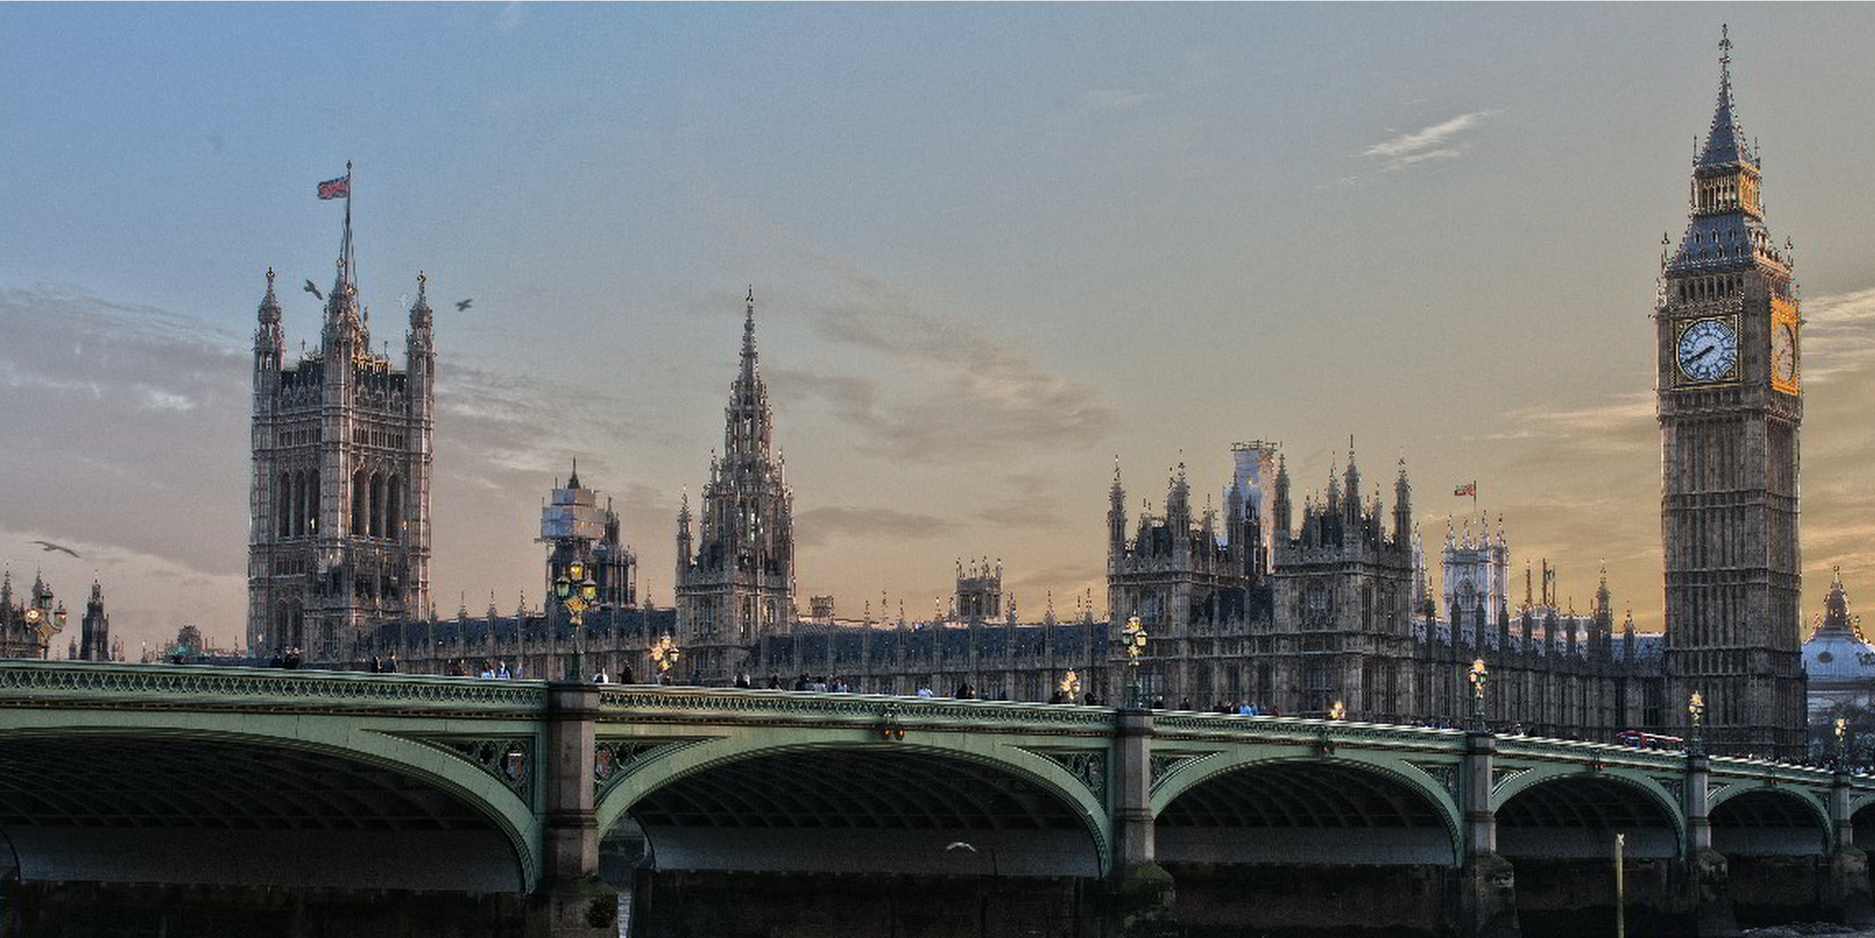 The Houses of Parliament photographed from across the river